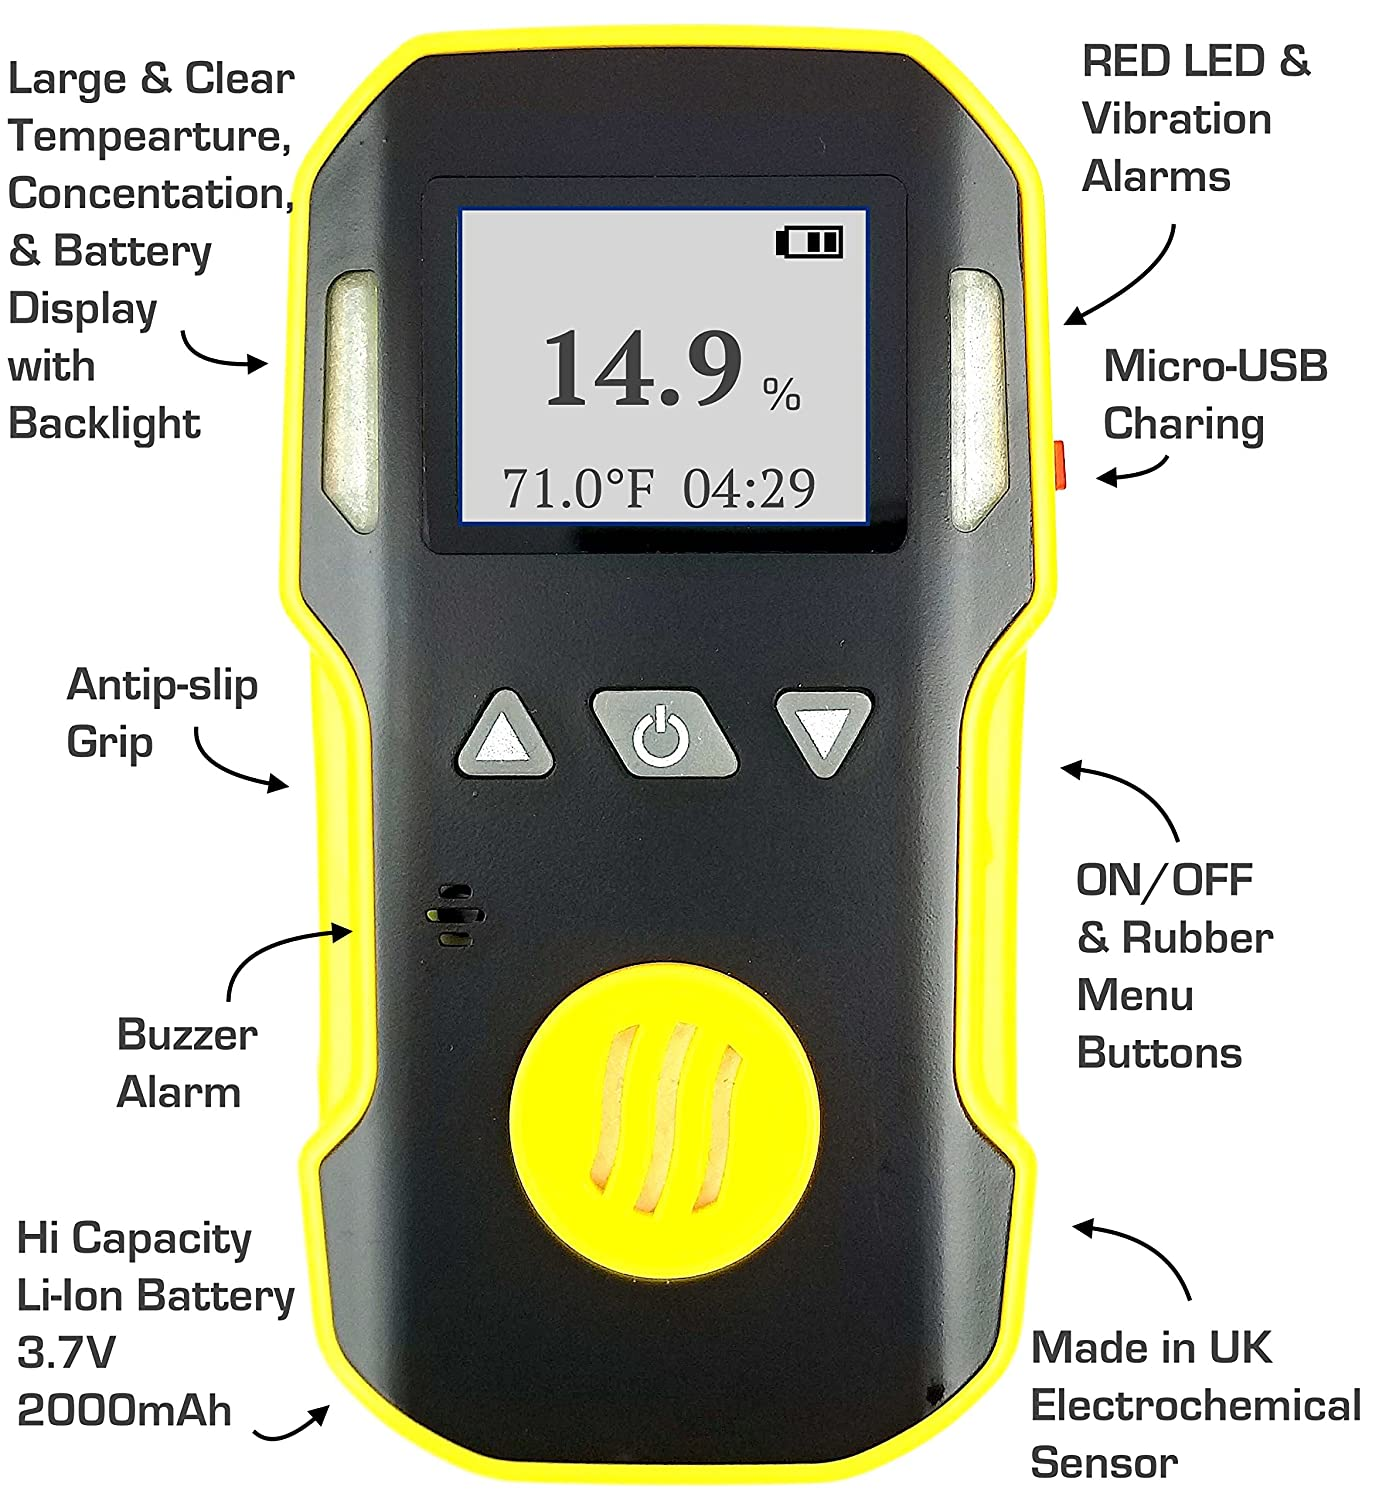 OXYGEN O2 Detector & Analyzer by FORENSICS | Professional Series | Water, Dust & Explosion Proof | USB Recharge | Sound, Light and Vibration Alarms | 0-30% ...